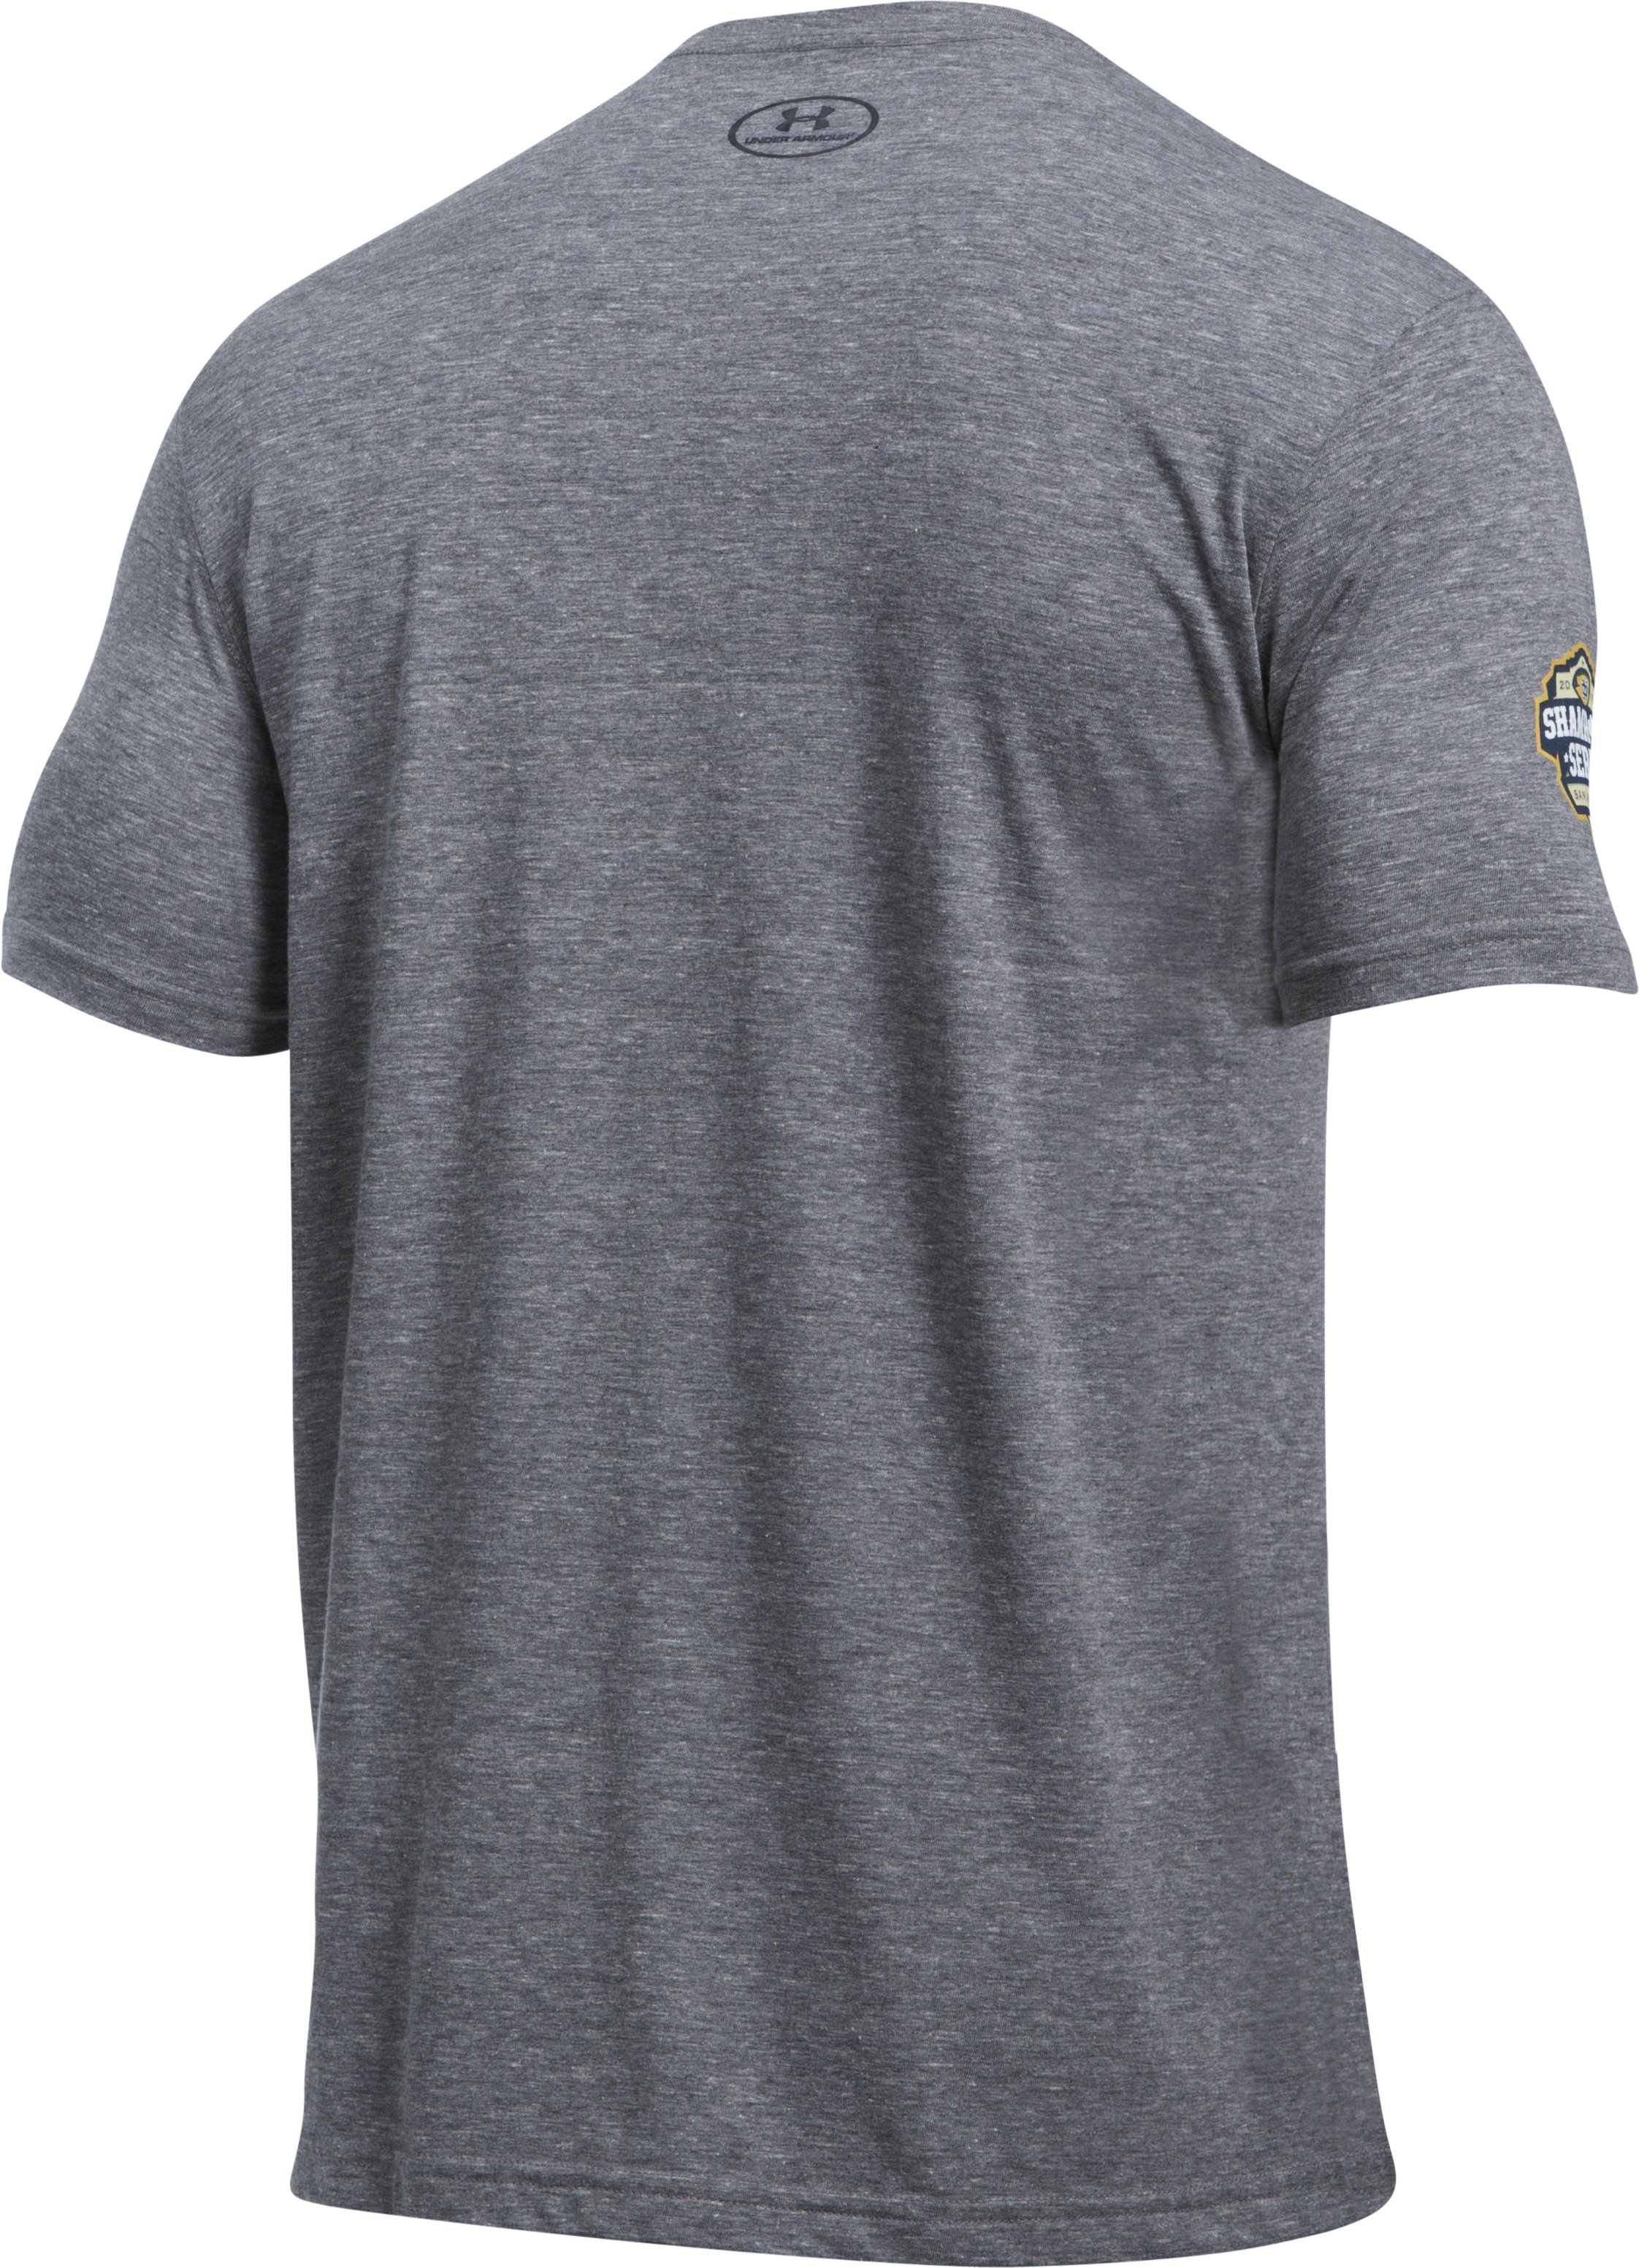 Men's Notre Dame UA 4 Corners T-Shirt, True Gray Heather,